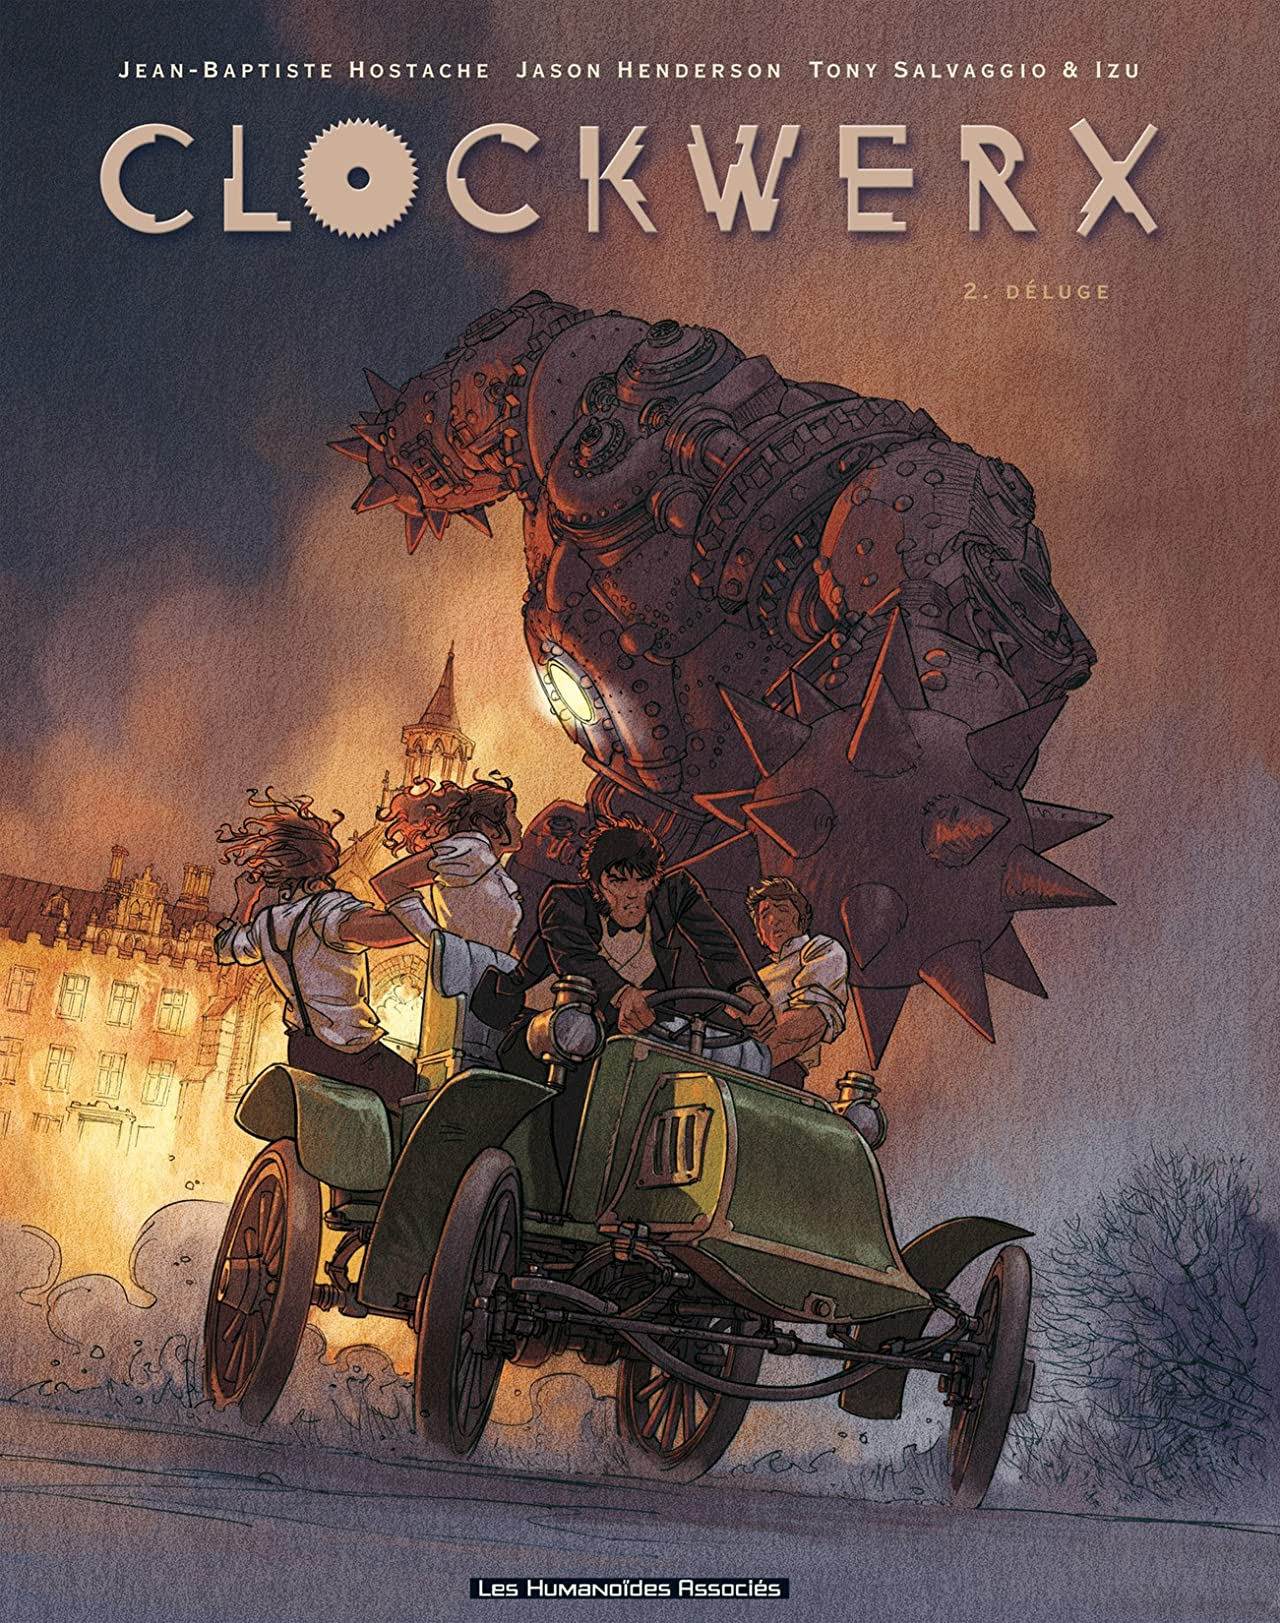 Clockwerx Vol. 2: Déluge